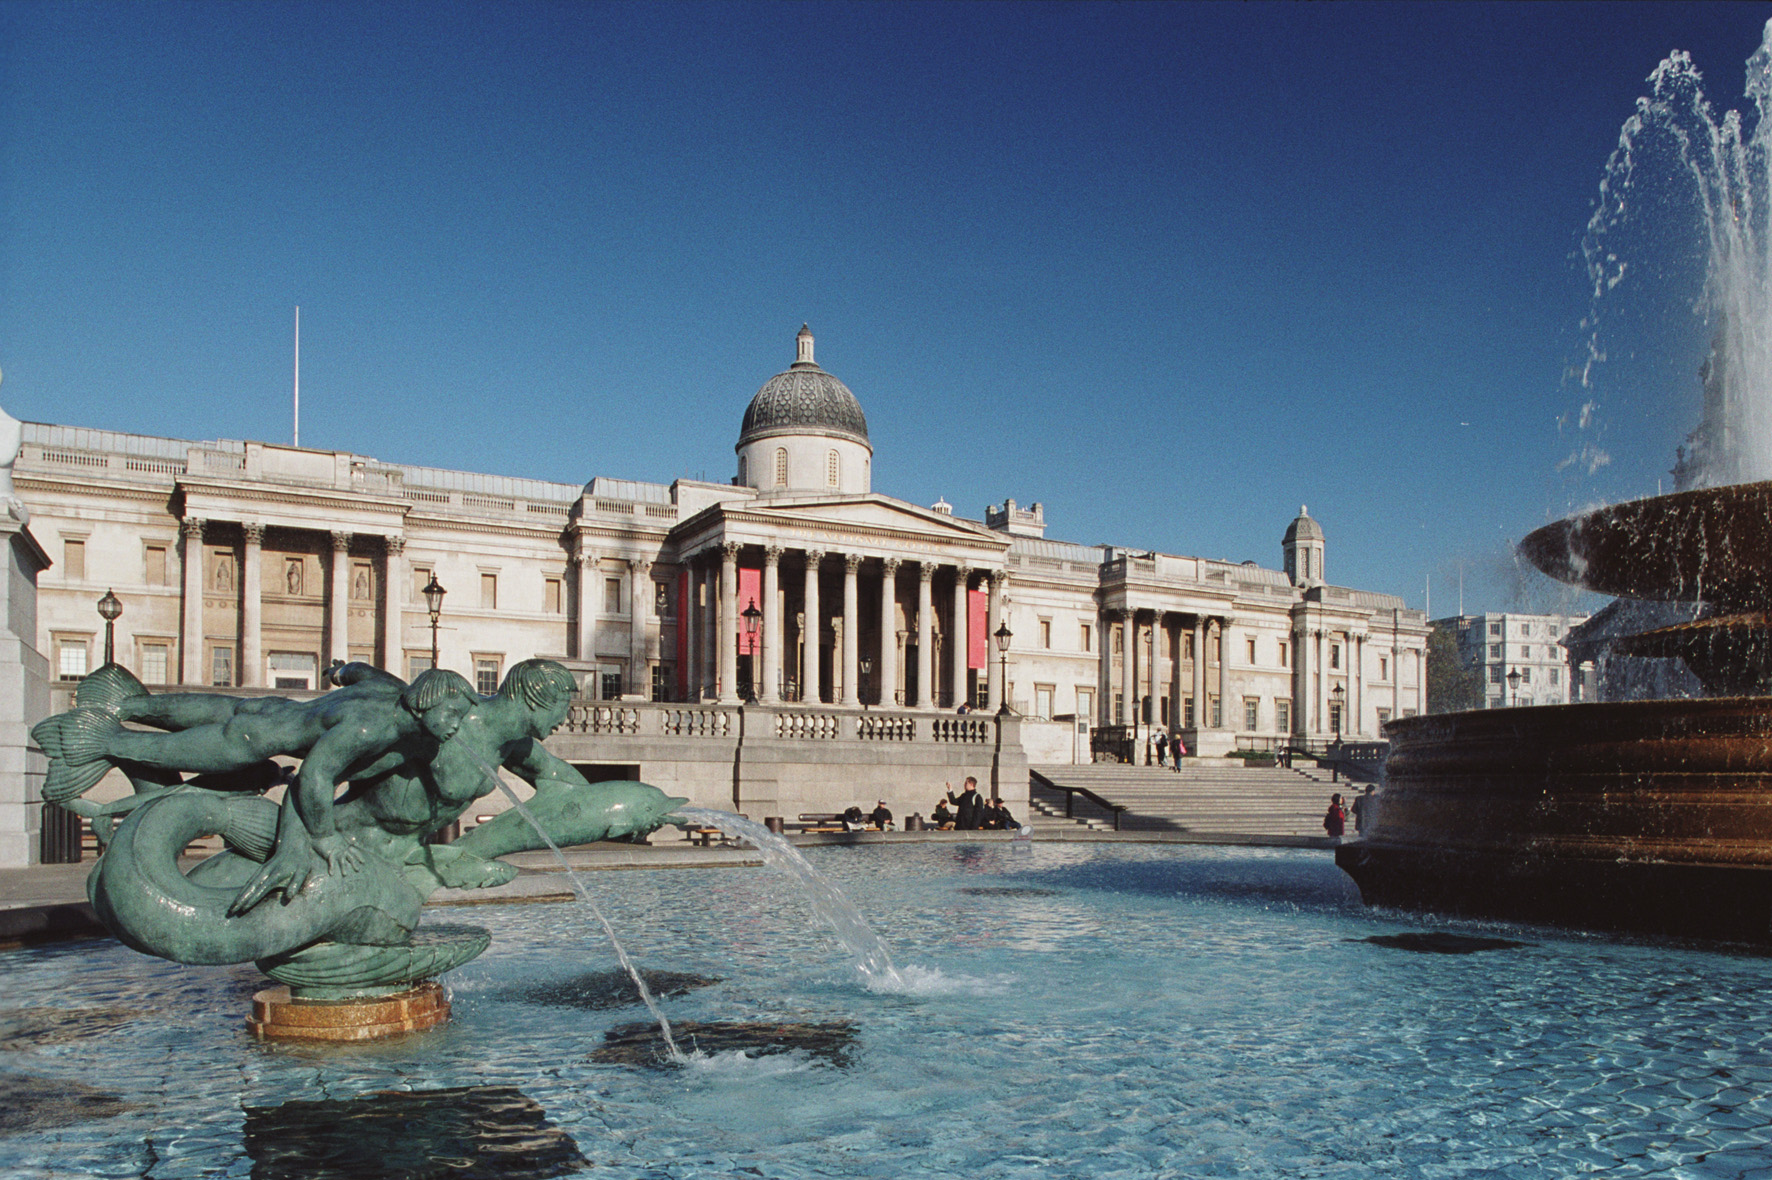 Randolph is the only college in the United States to partner with the National Gallery, London.